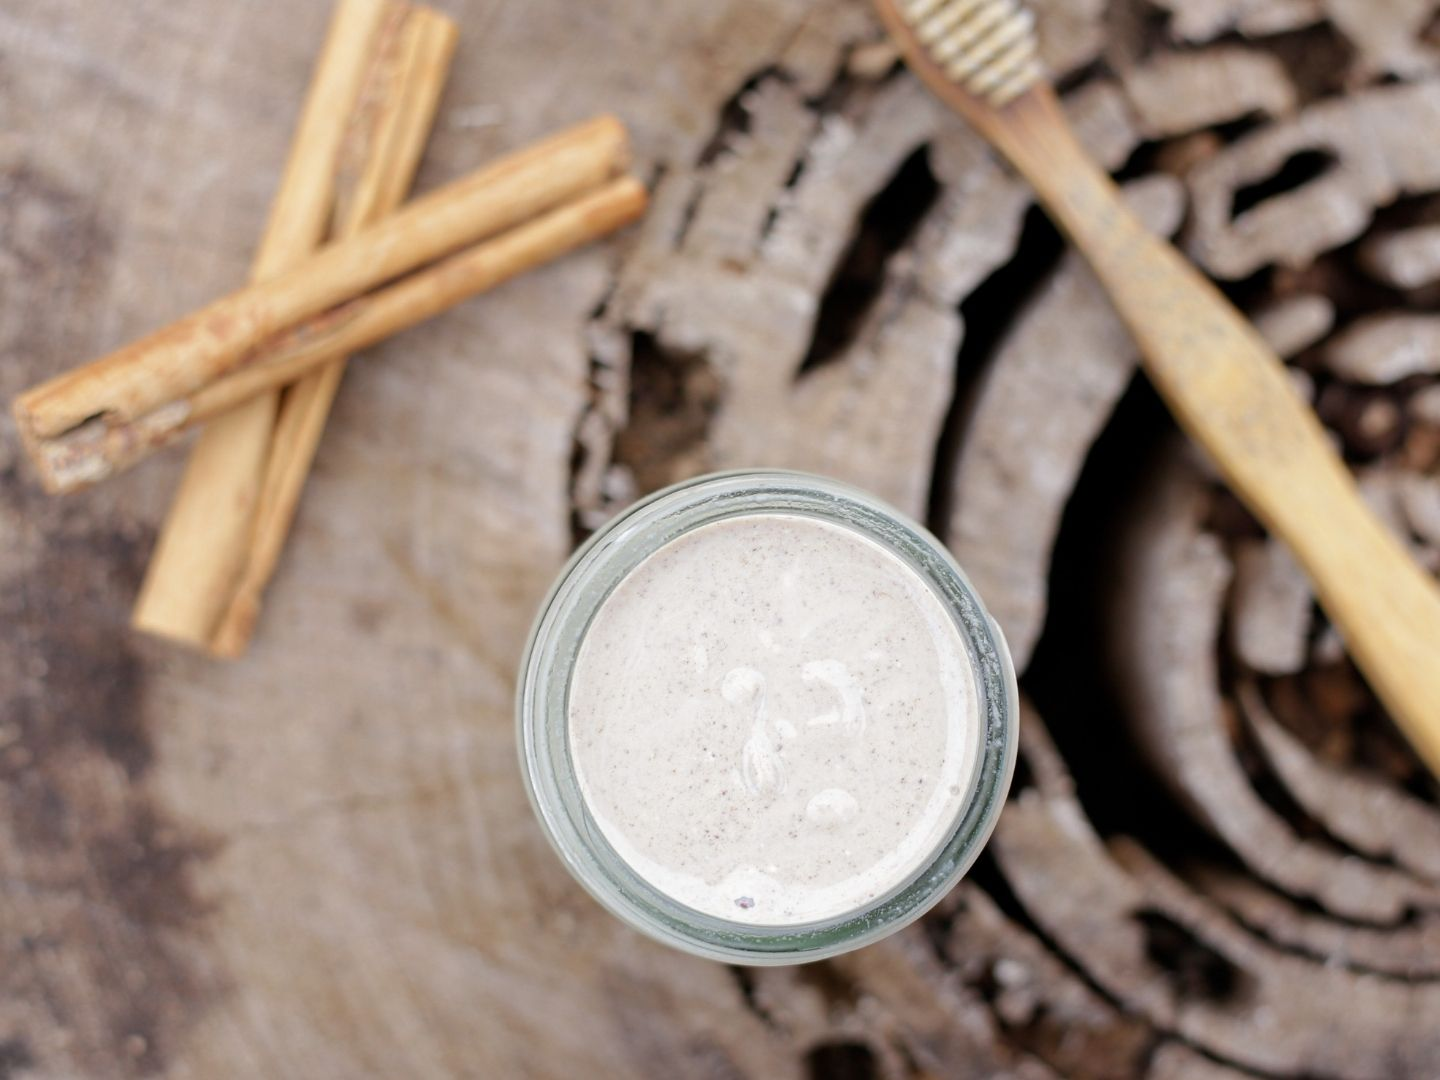 Homemade cinnamon toothpaste with cinnamon sticks and toothbrush in background